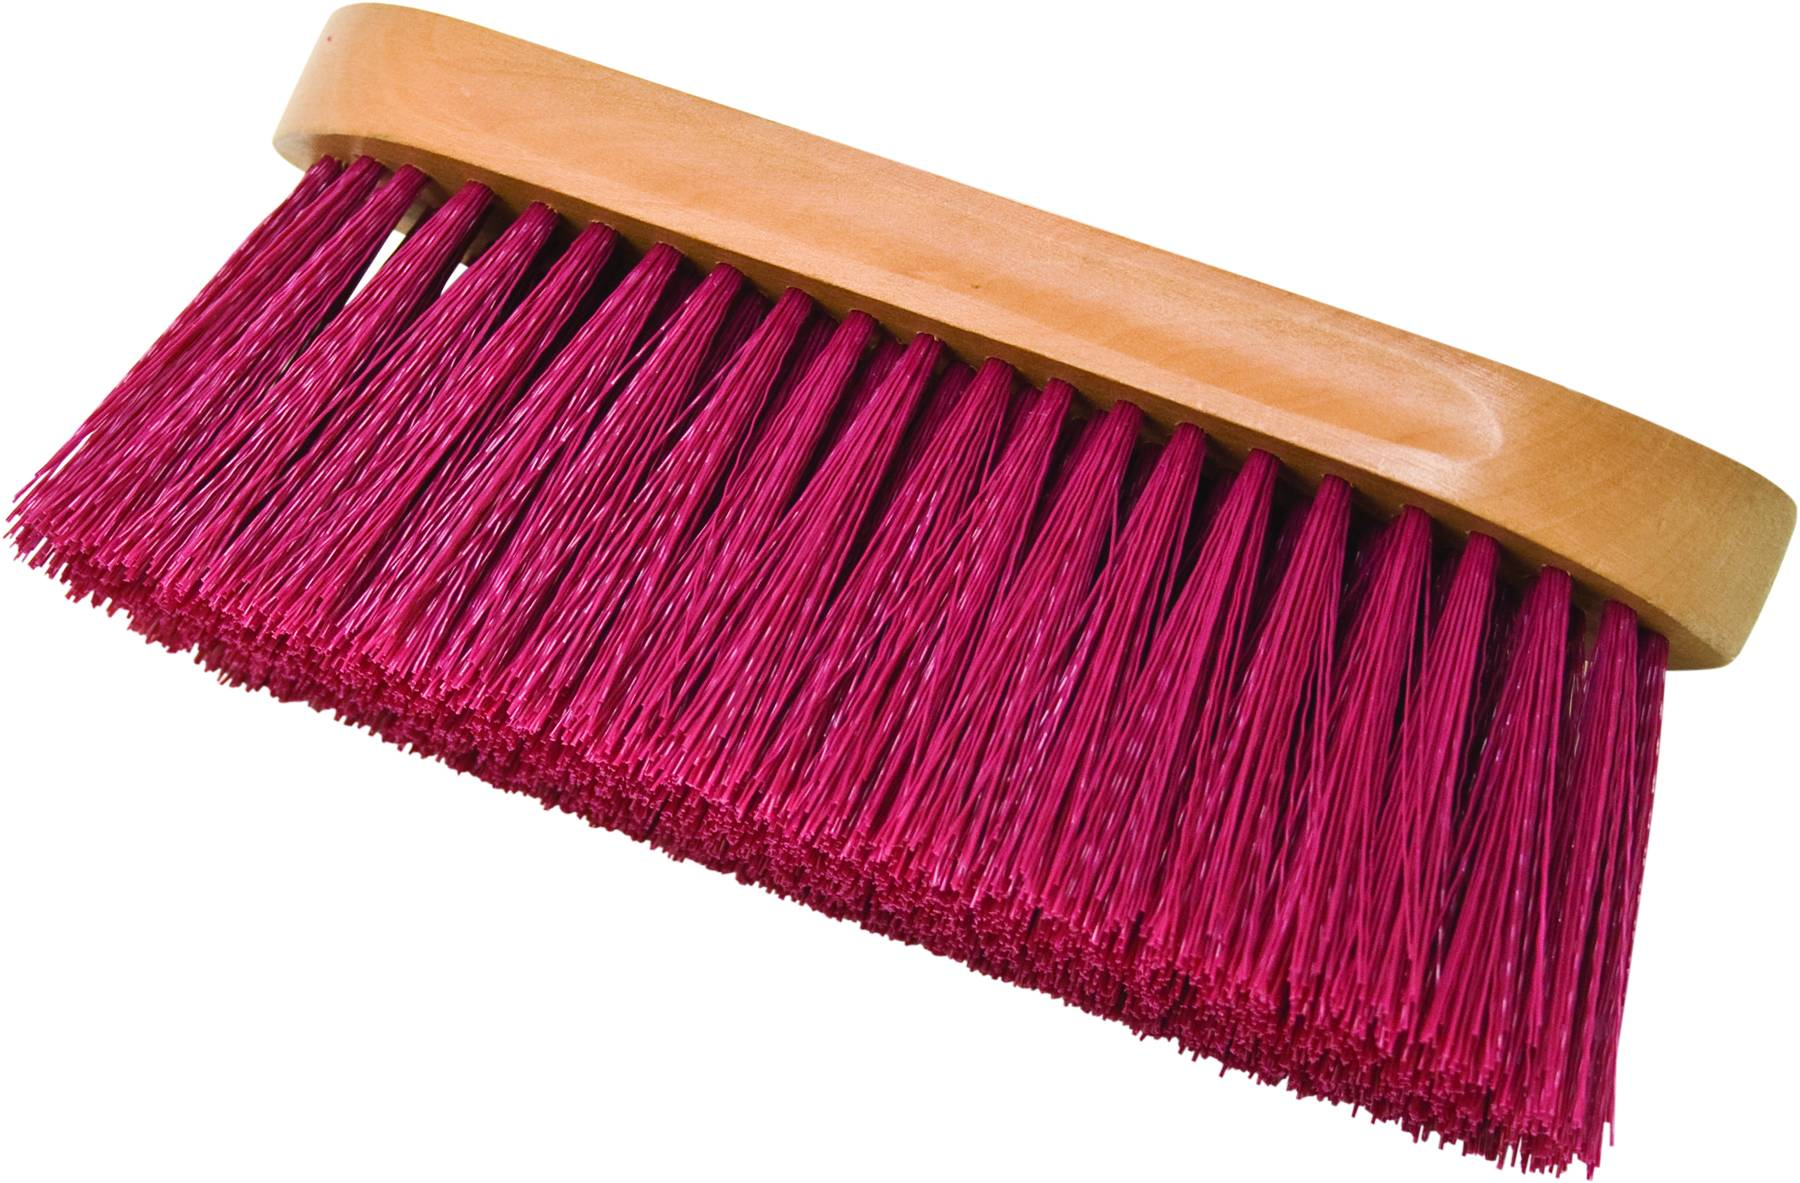 Action Dandy Brush With Long Bristle